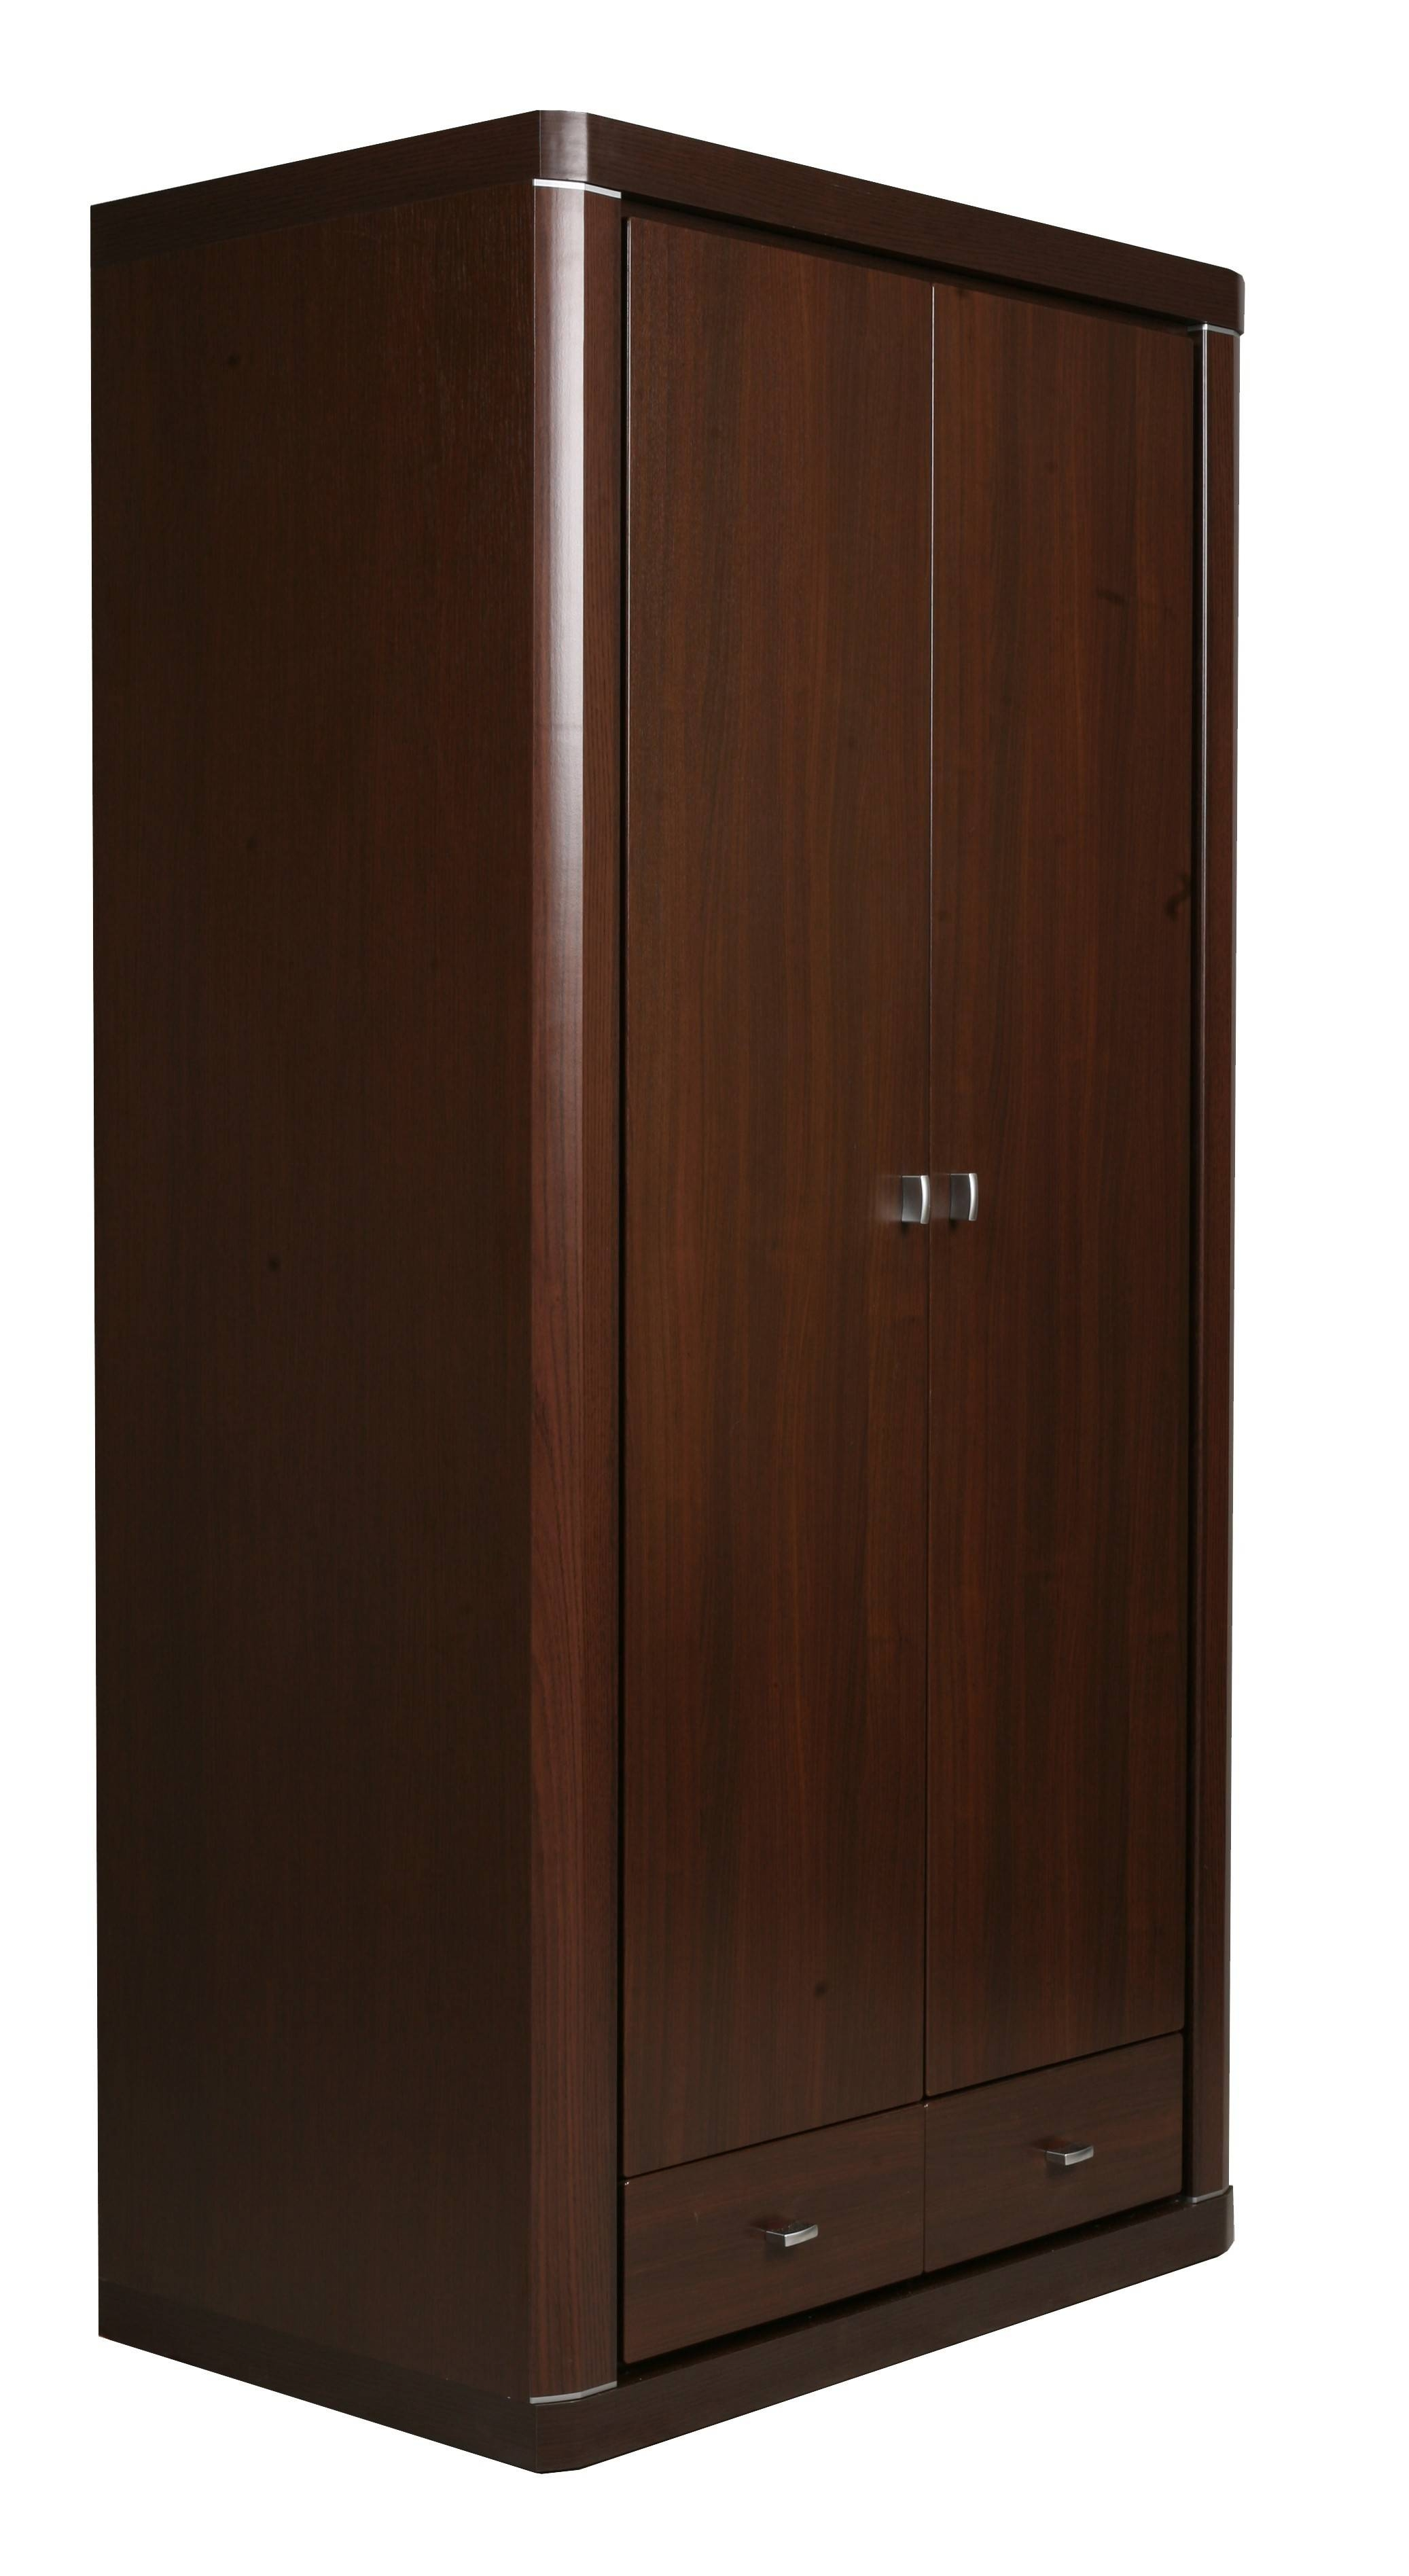 Wardrobe : Dark Wood Wardrobe Cheap Dark Wood Wardrobe Furniture inside Cheap Wood Wardrobes (Image 13 of 15)